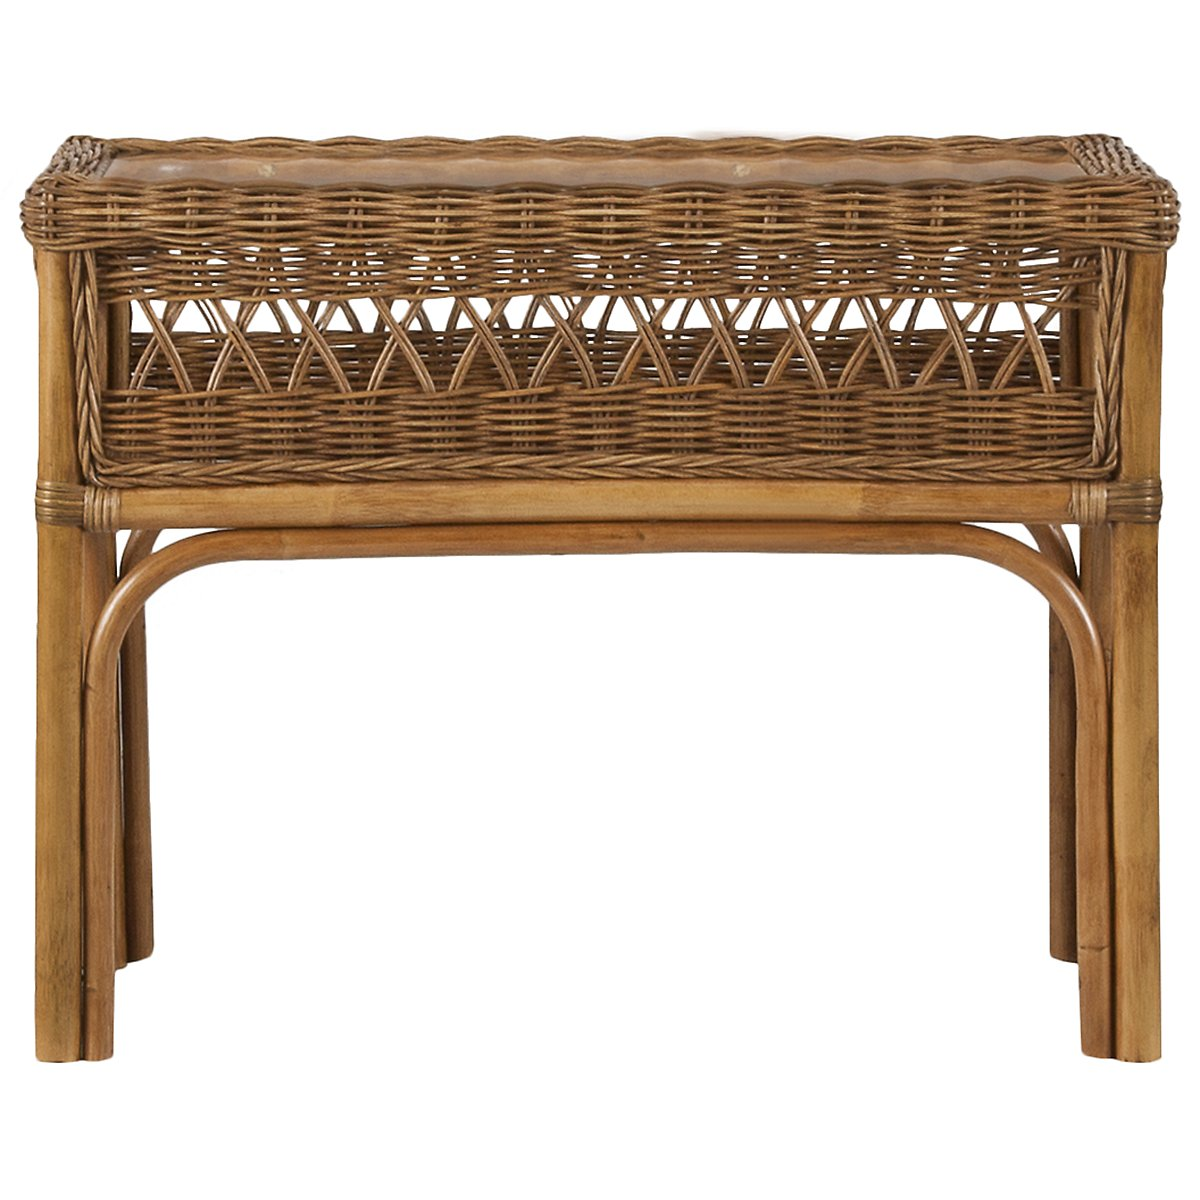 Glades Light Tone Woven Rectangular Chairside Table